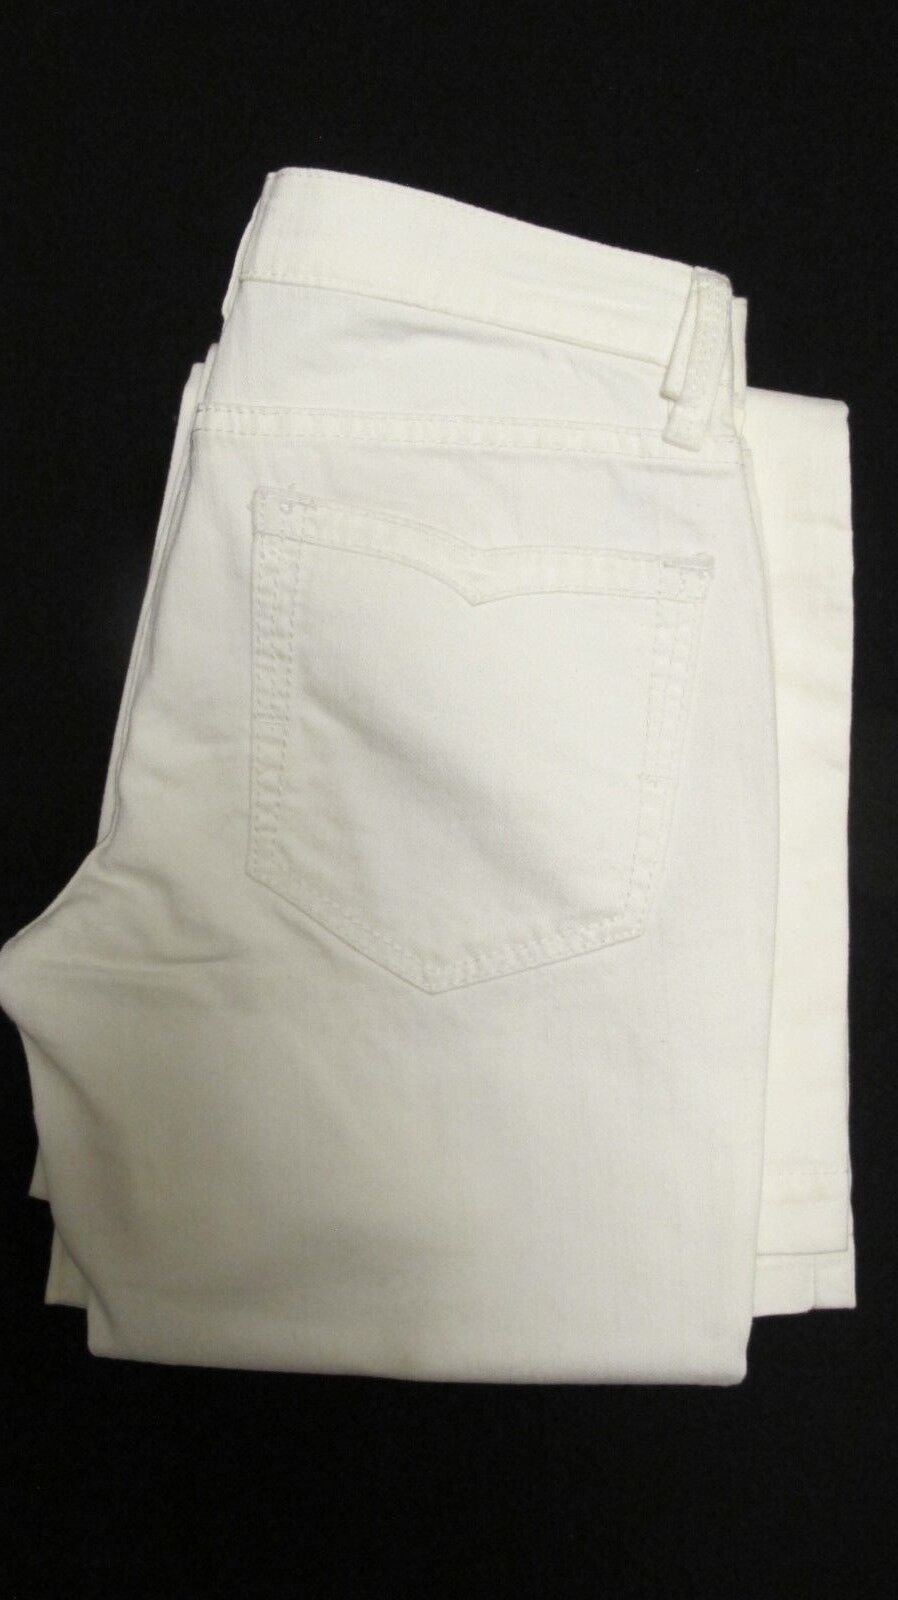 BCBG MAXAZRIA WHITE TANYA D LOW RISE FLARE JEANS SIZE 26 NWT